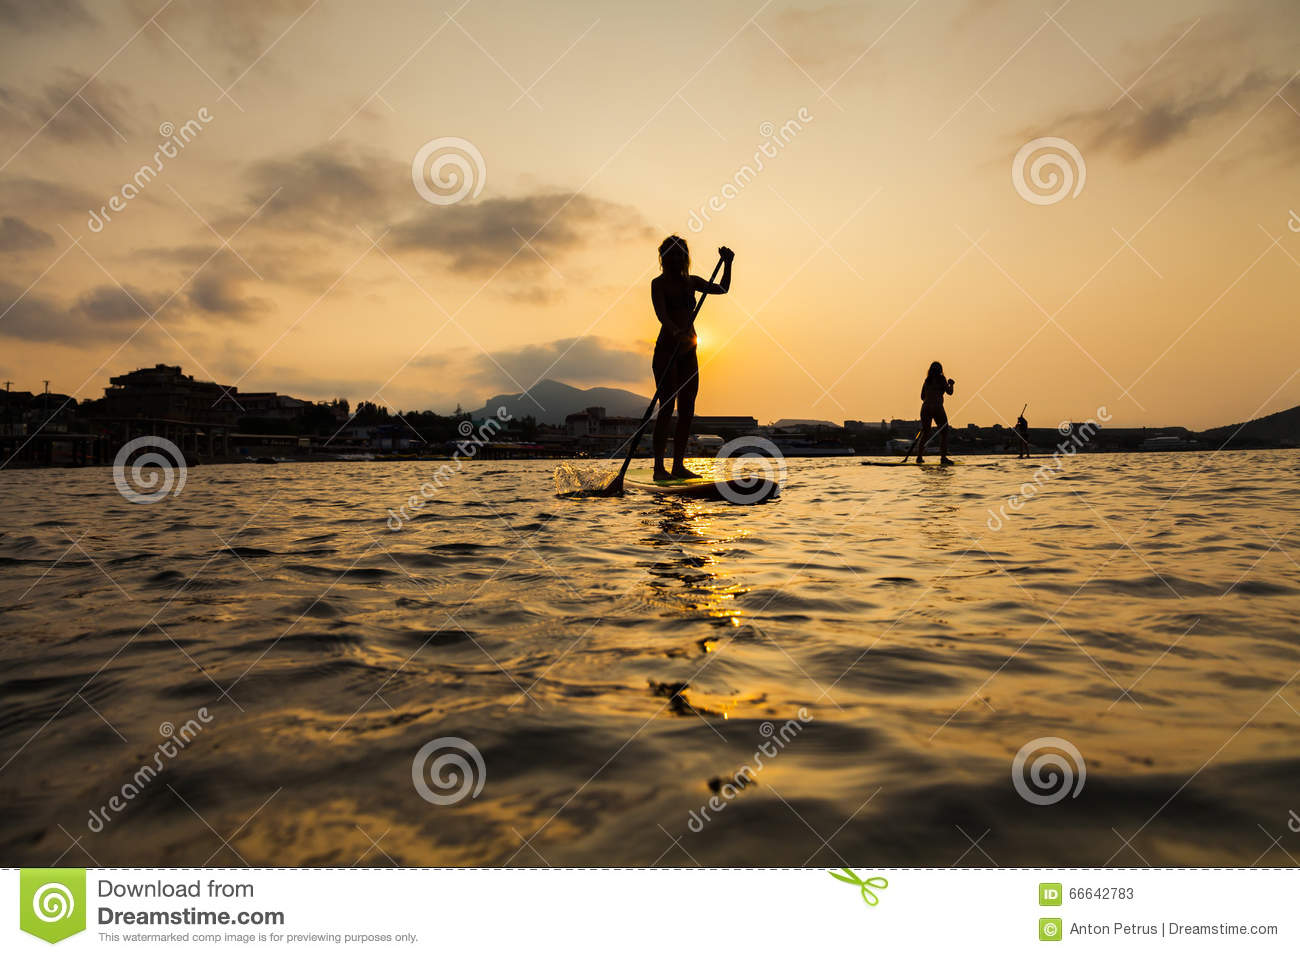 Silhouette Of A Beautiful Woman On Stand Up Paddle Board